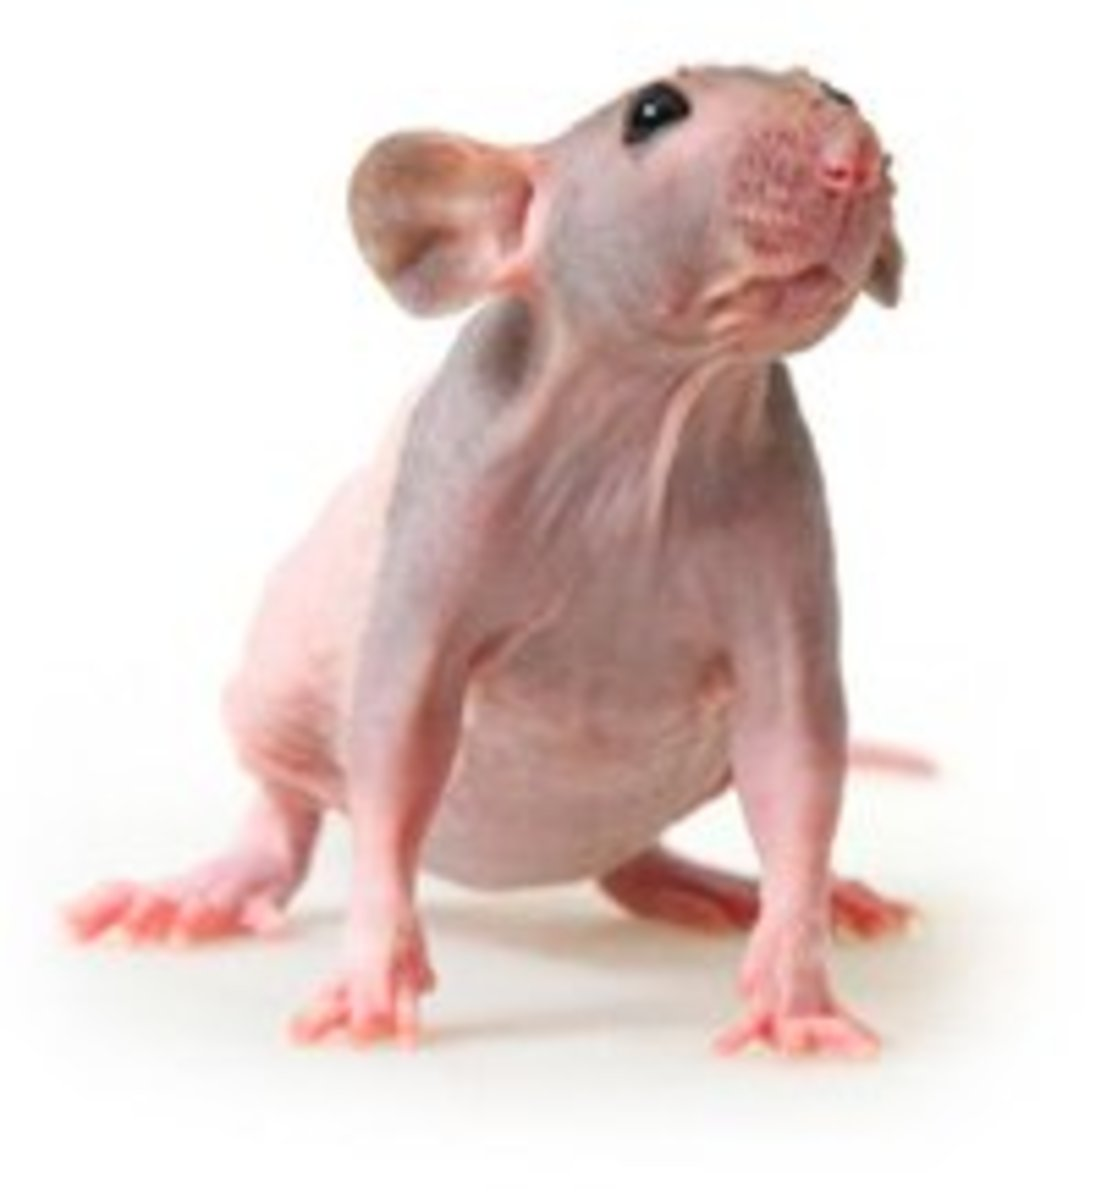 Hairless rats are awesome pets, guys!